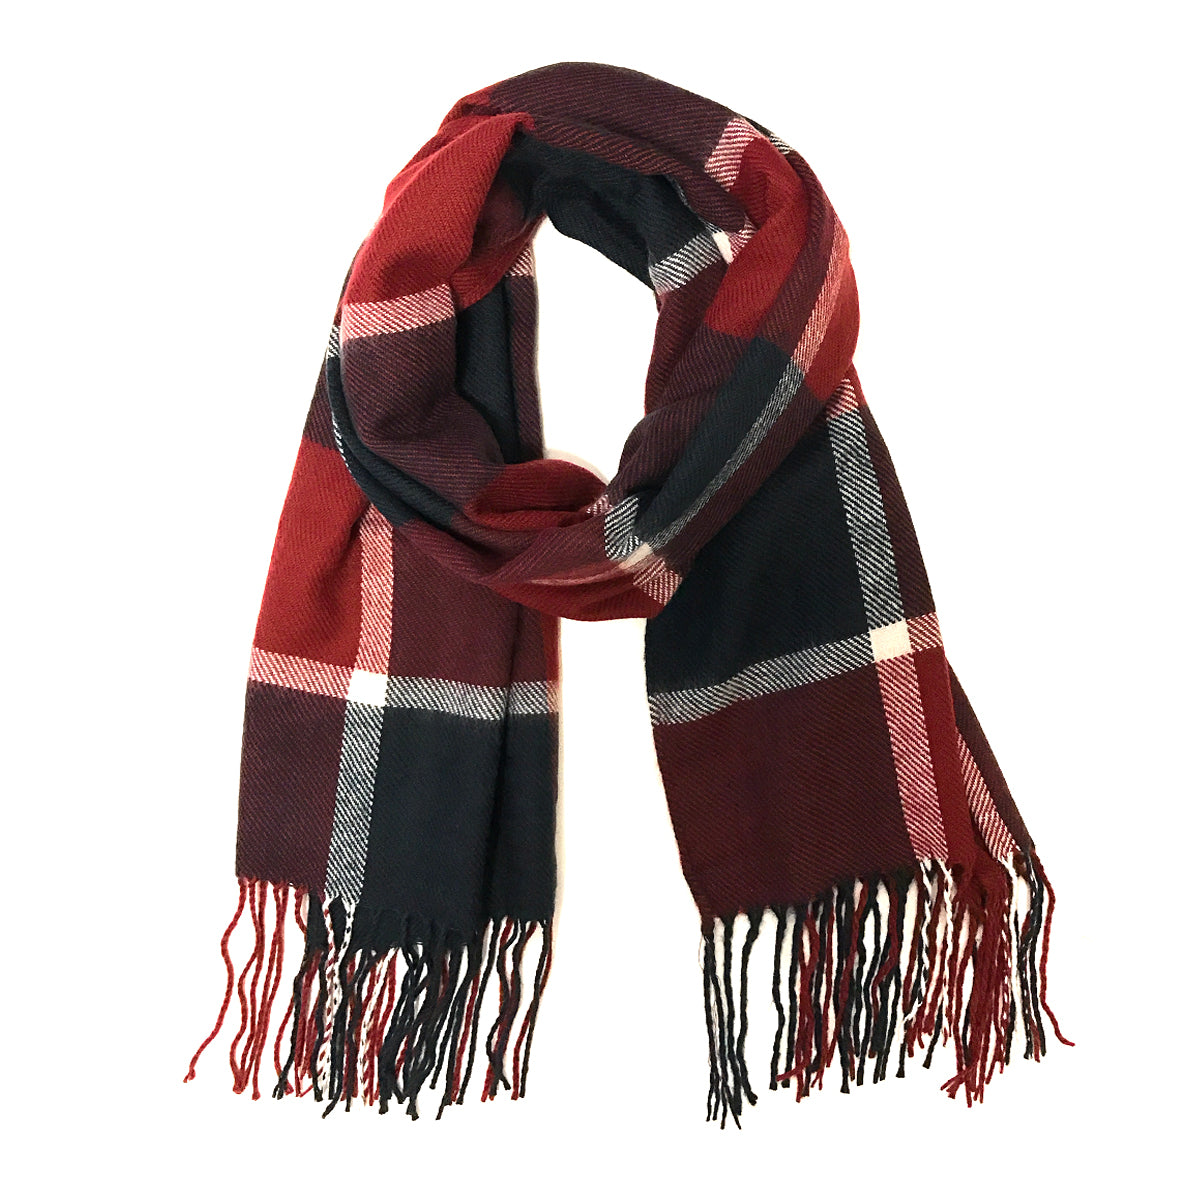 Wrapables Plaid Print Long Scarf and Beanie Hat Set